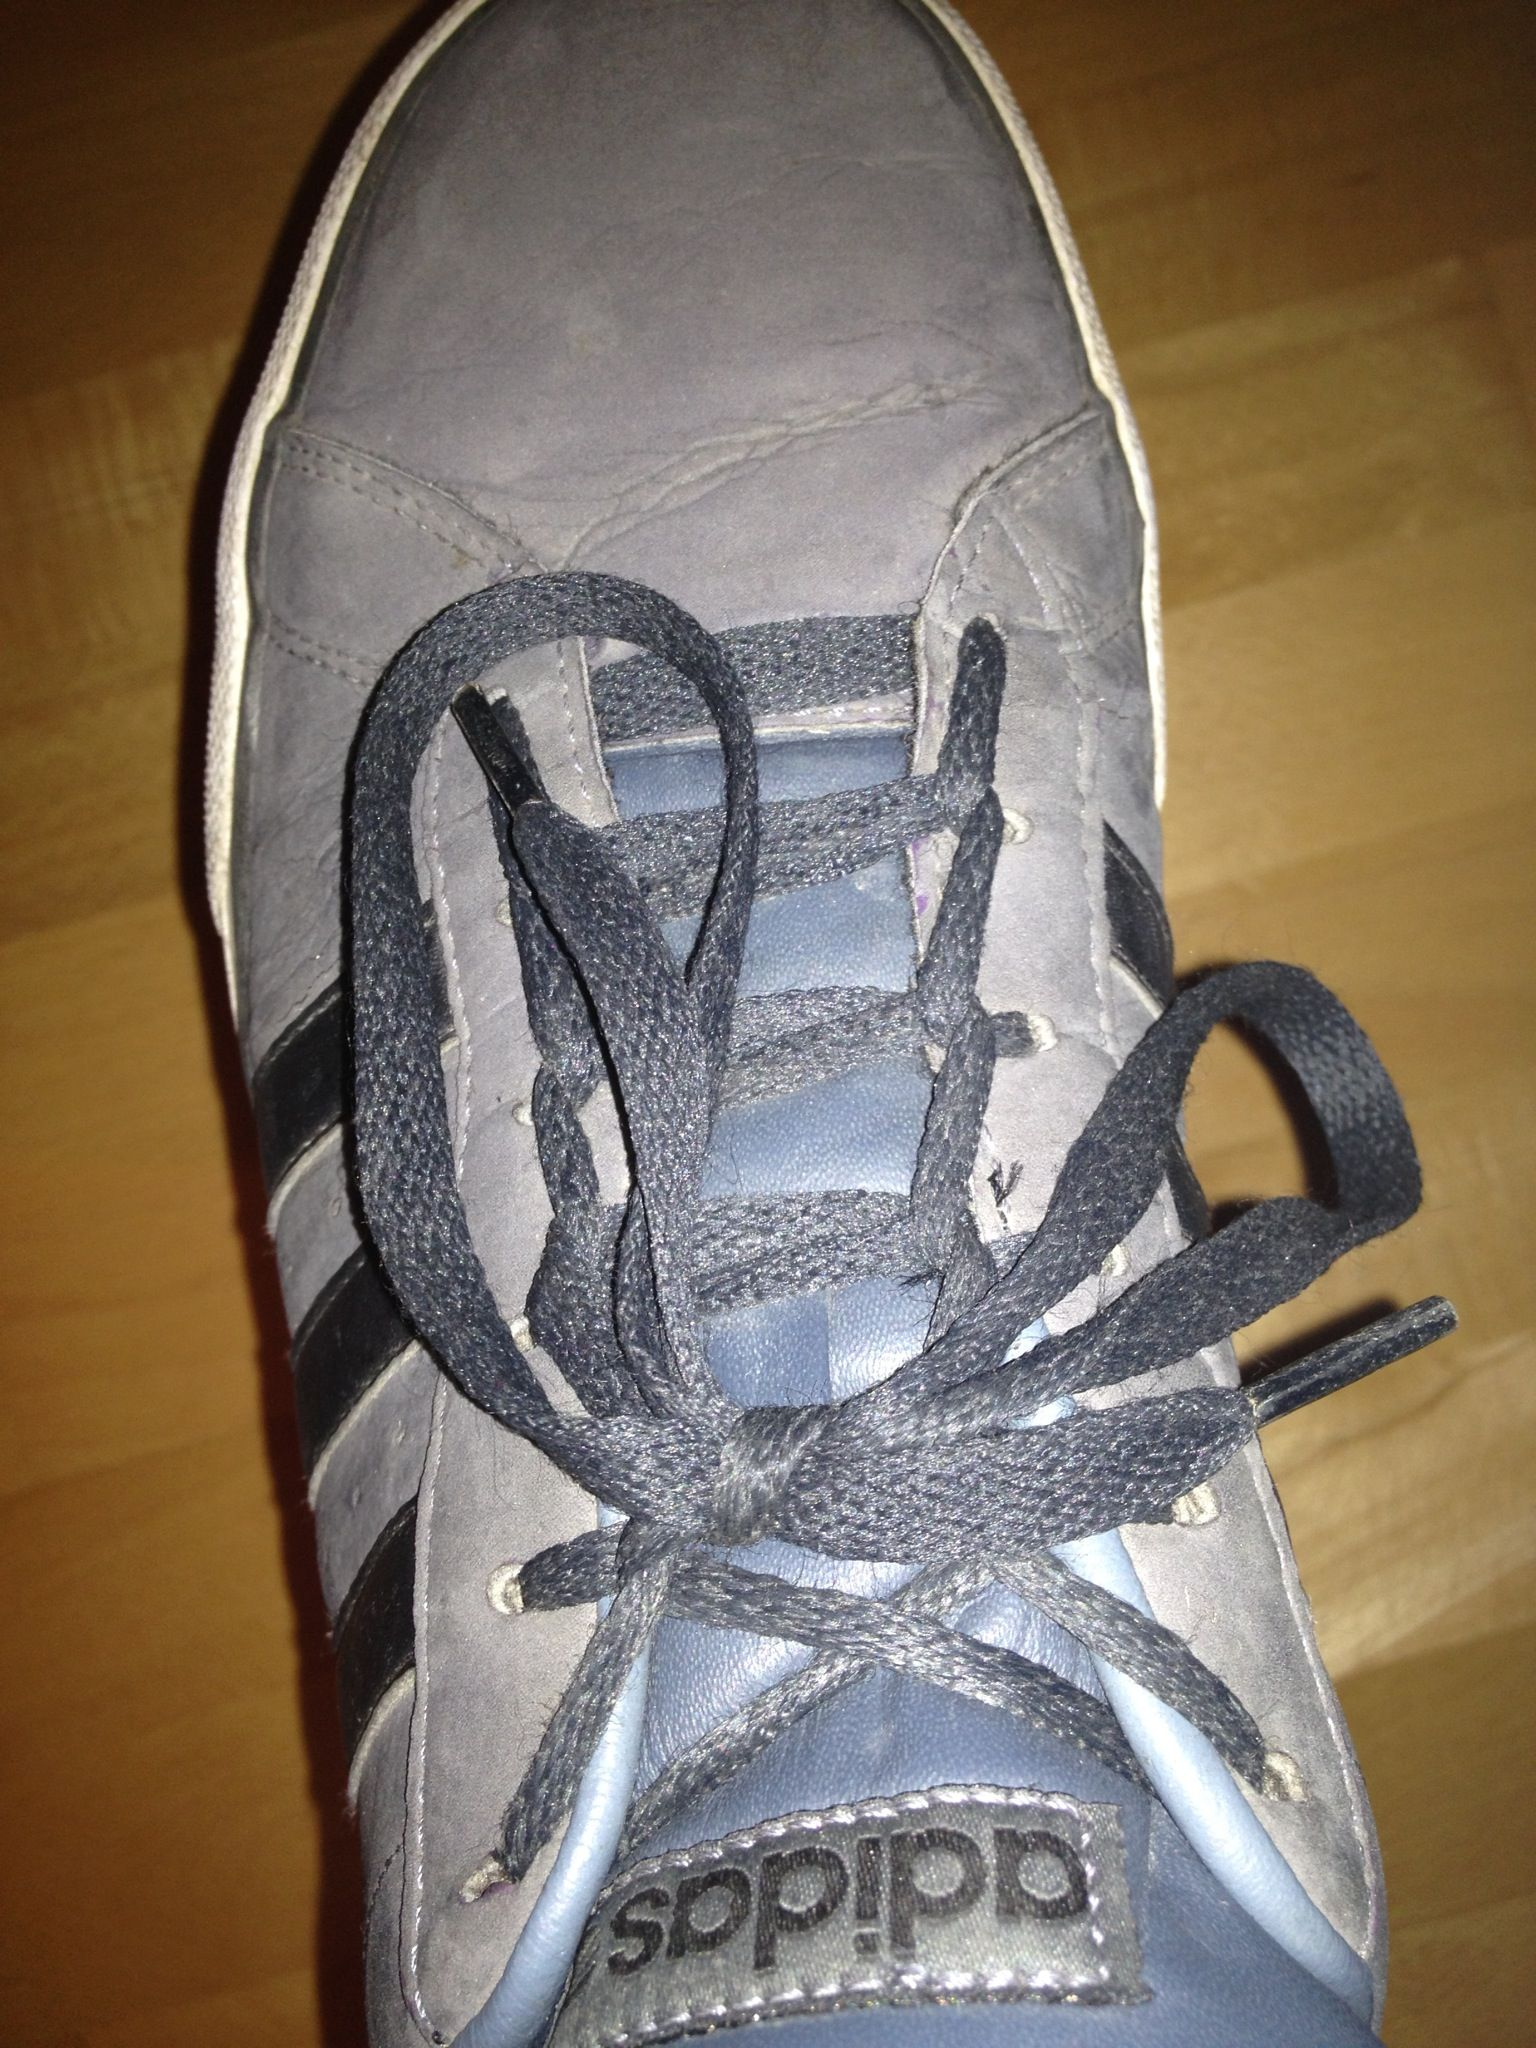 How To Tie Your Shoe In 5 Seconds